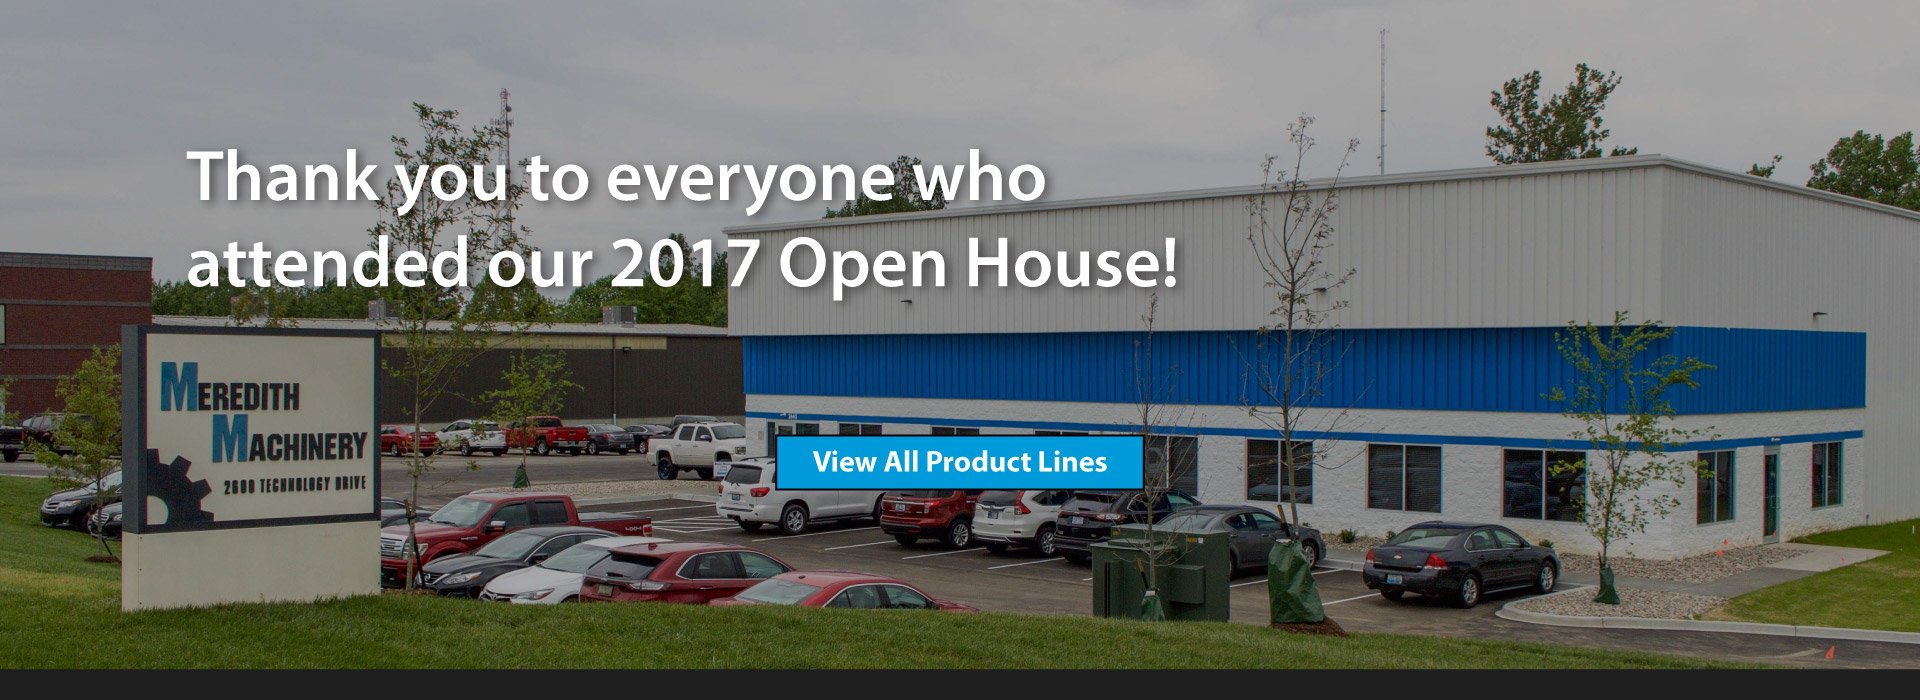 Thank you for attending Meredith Machinery Open House